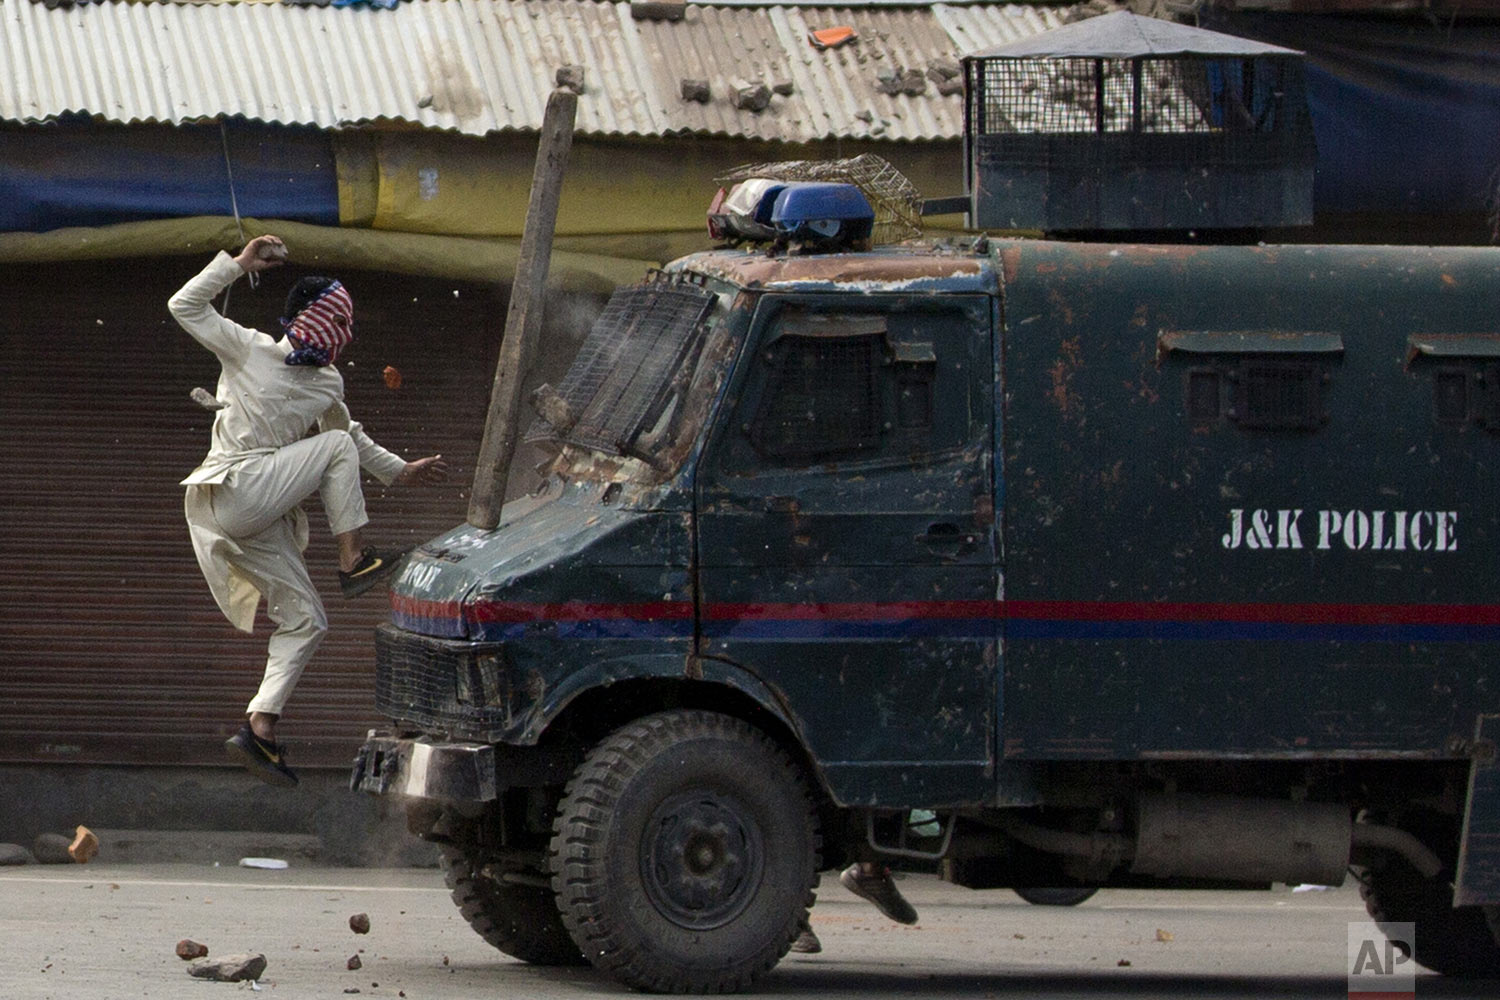 A masked Kashmiri protester jumps on an Indian police armored vehicle as he throw stones at it during a protest in Srinagar, Indian-controlled Kashmir, on Friday, May 31, 2019. Government forces fired tear gas and pellets to disperse hundreds protesting the recent killing of a Kashmiri rebel leader, coinciding with the annual Al-Quds Day demonstration. The last Friday of the Islamic holy month of Ramadan is observed in many Muslim communities as Al-Quds Day, or Jerusalem Day, as a way of expressing support to the Palestinians and emphasizing the importance of Jerusalem to Muslims. (AP Photo/Dar Yasin)